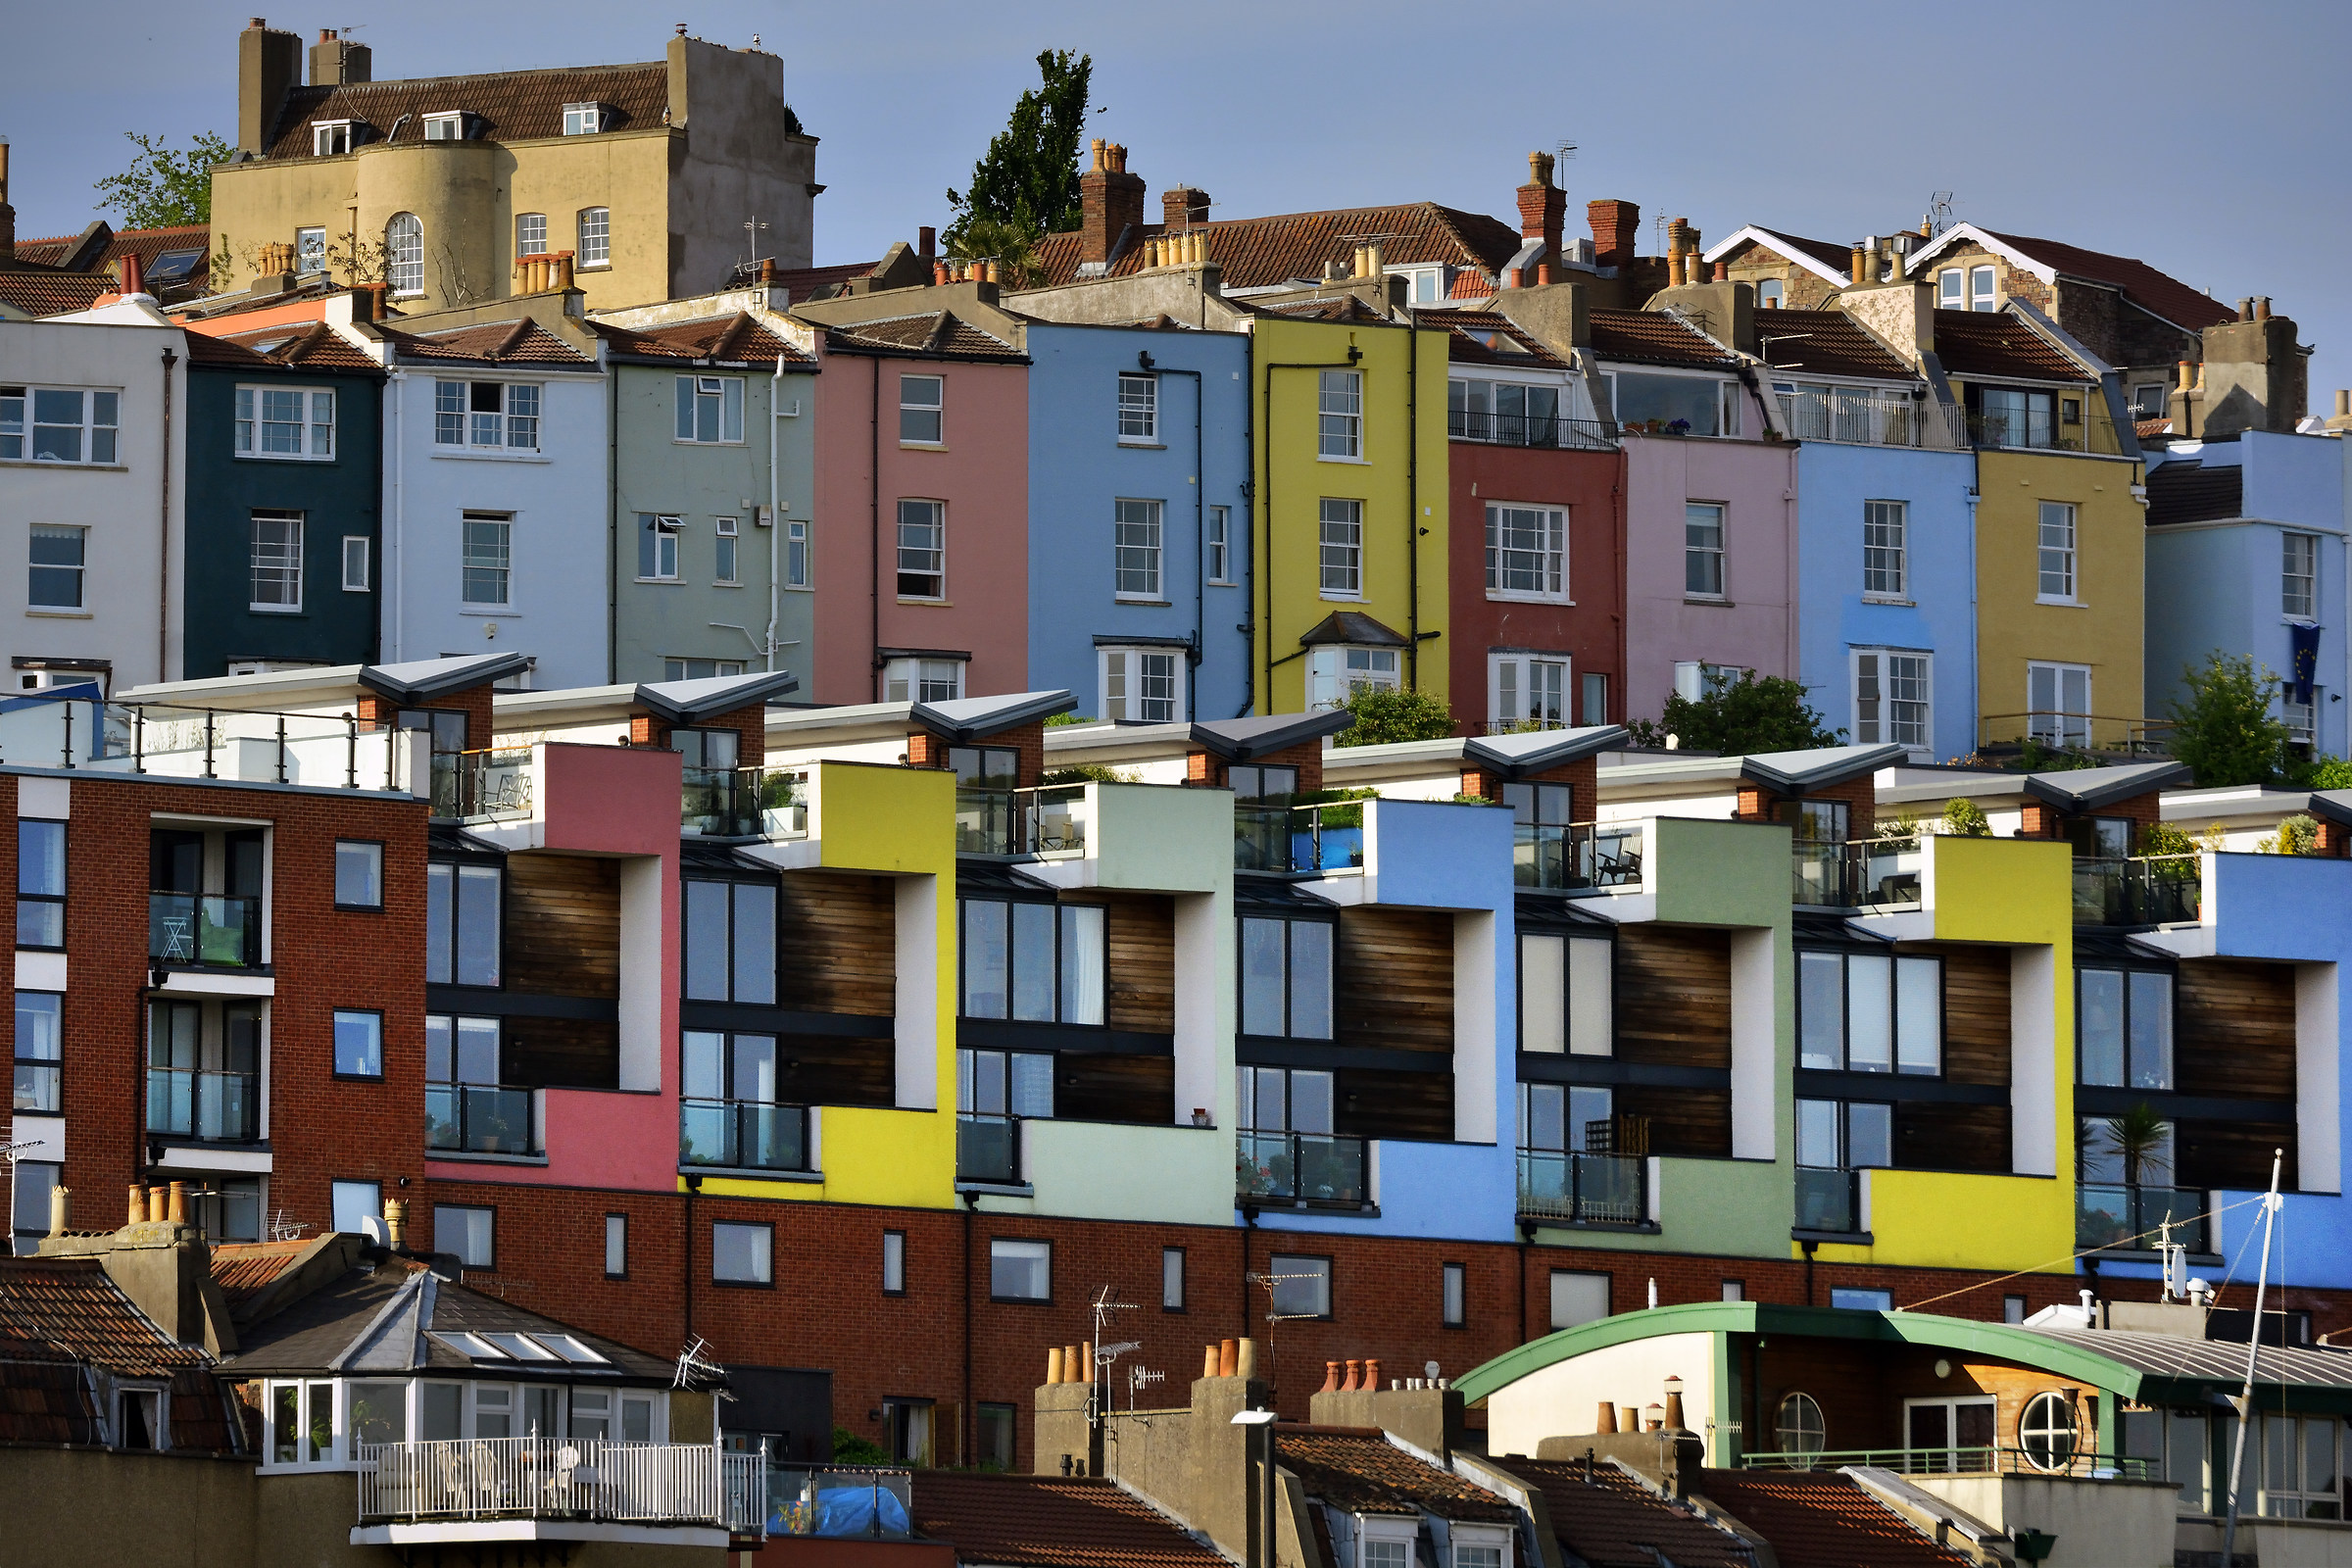 Bristol - Housing Doesn't Have to Be Boring?...